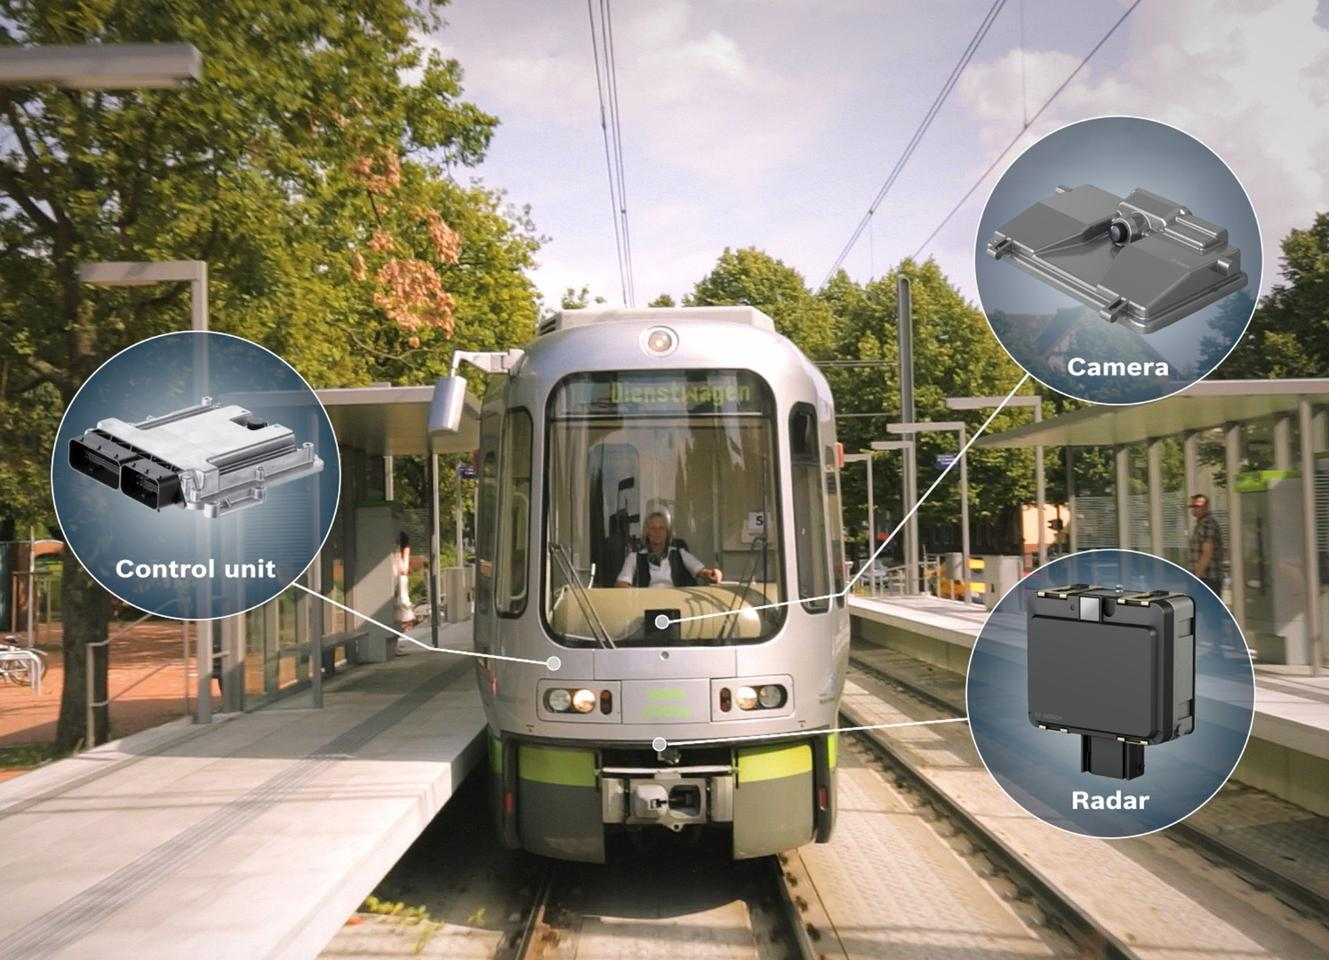 Bosch Engineering adapted the tram system from its automotive technology, which has been in production for some time